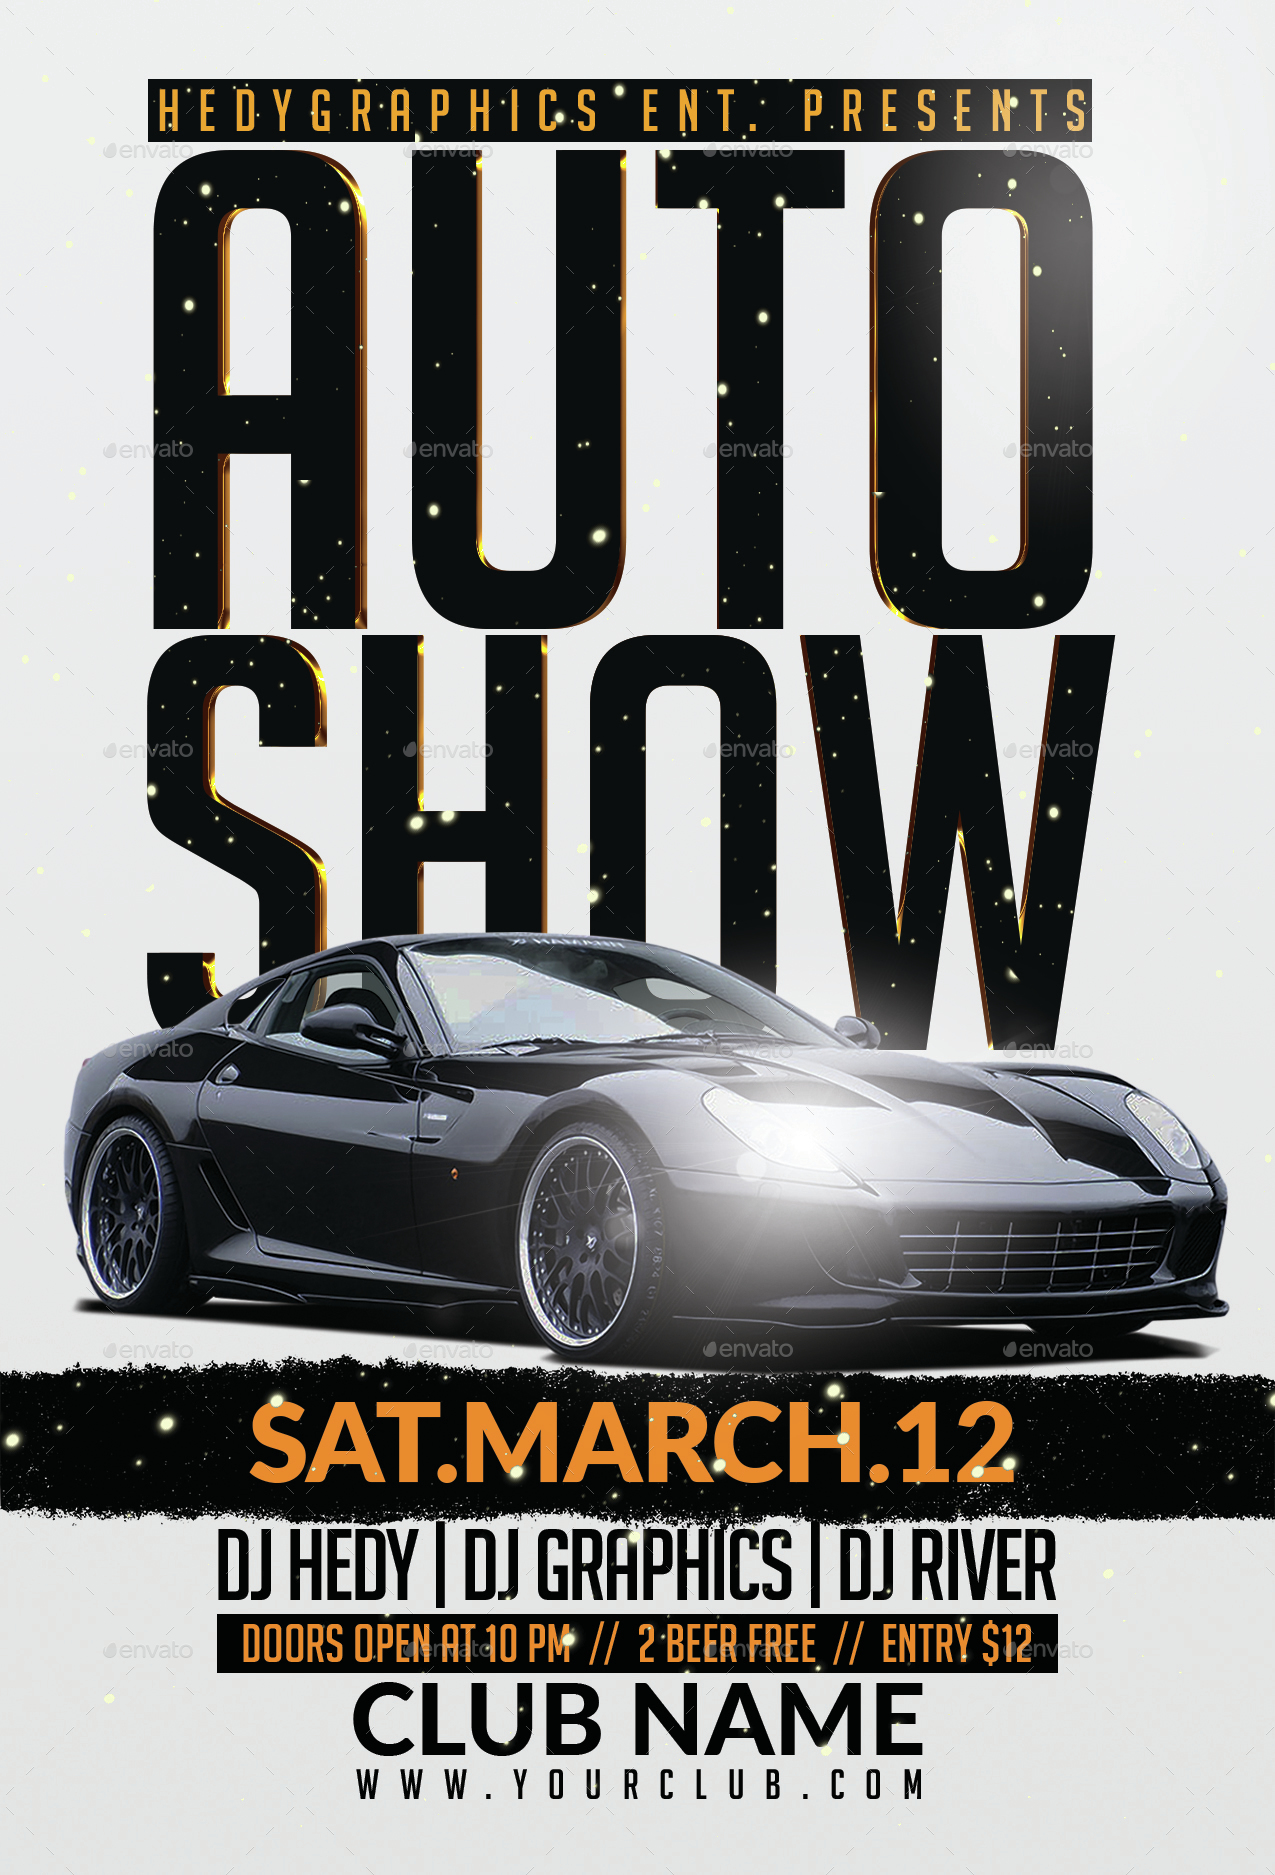 Auto Show Flyer Template By HedyGraphics GraphicRiver - Car show flyer background